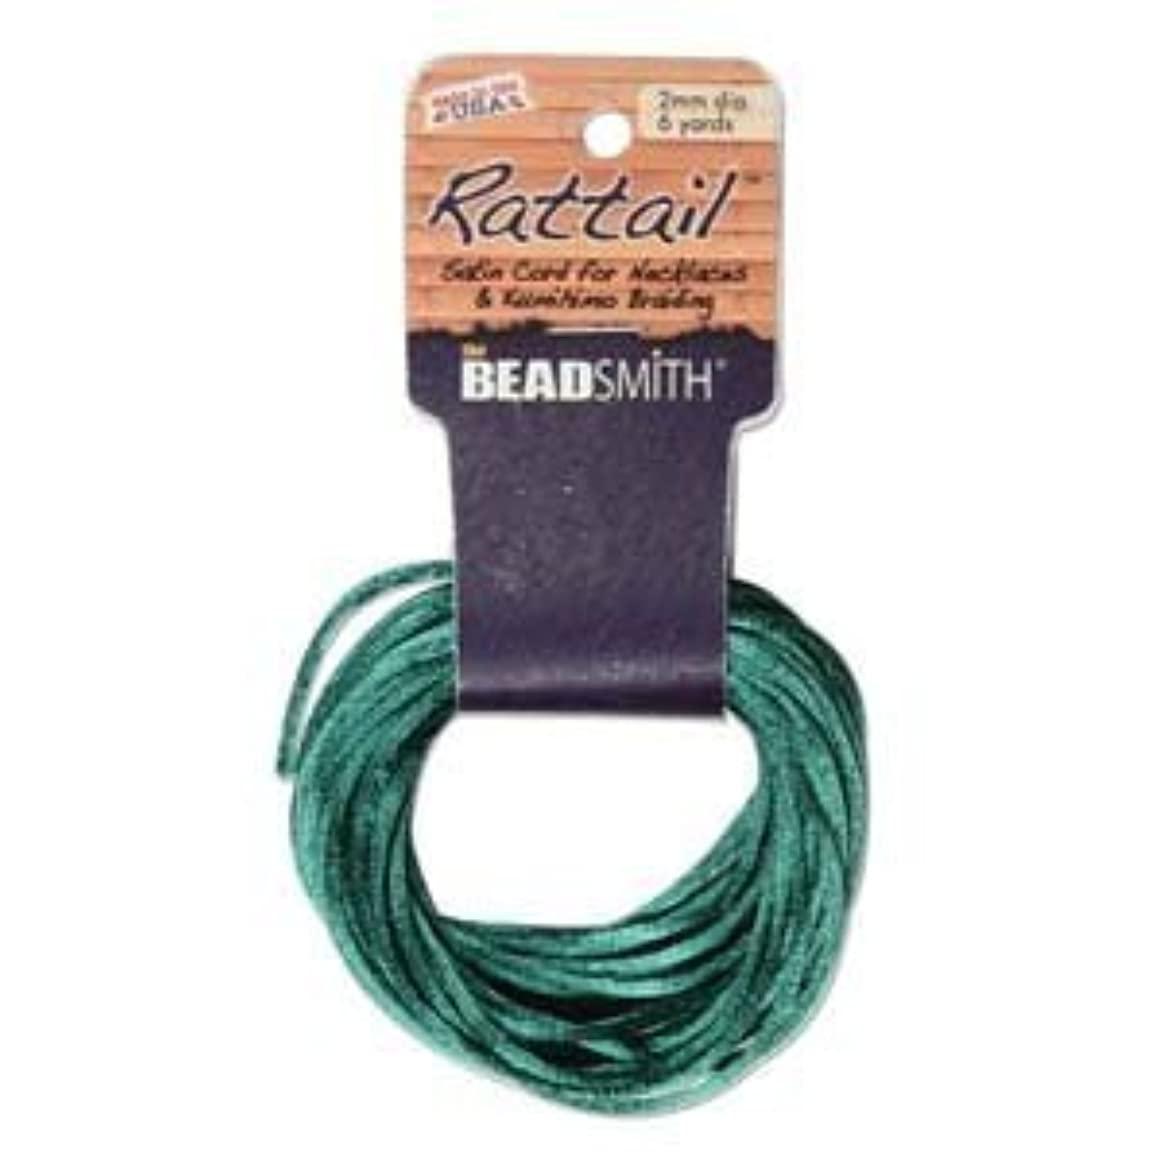 1mm Satin Rattail Braiding Cord Dark Green 6 Yards For Kumihimo and Craft by Beadsmith